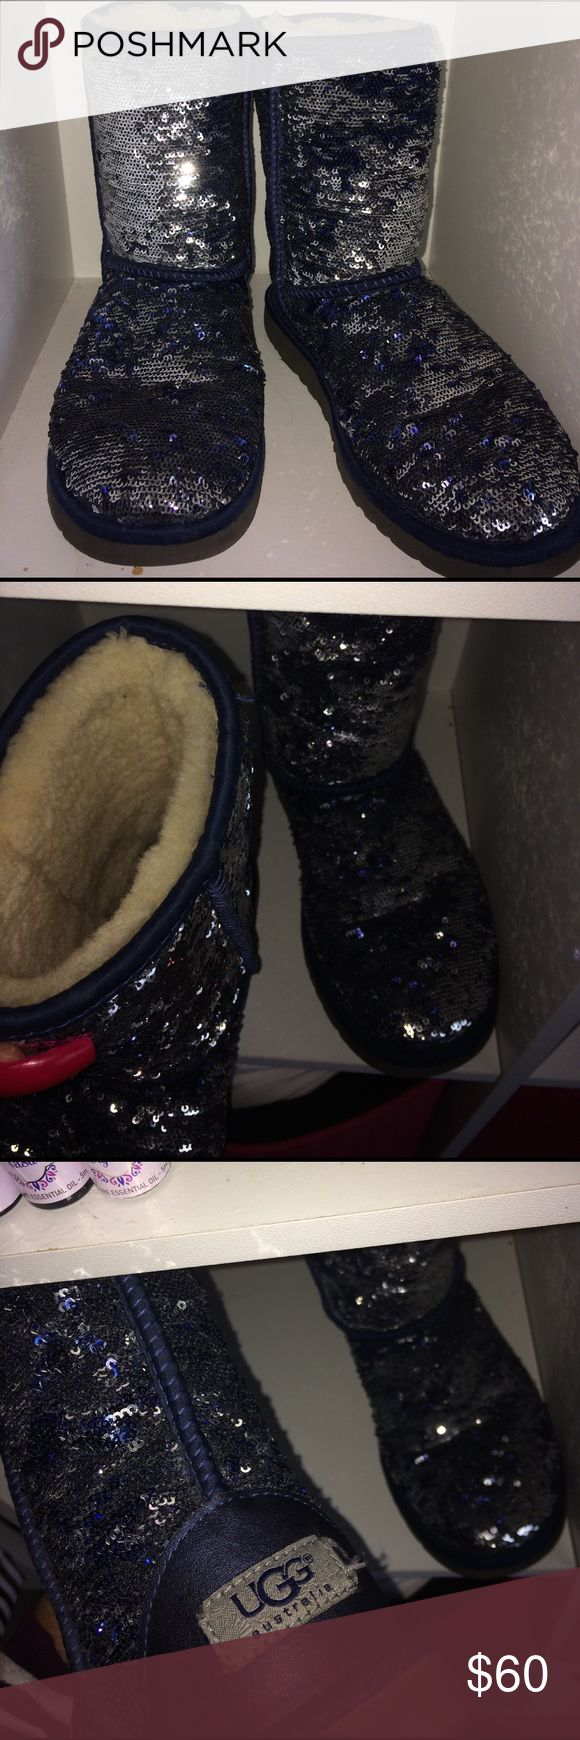 Blue uggs Some wearing still good condition UGG Shoes